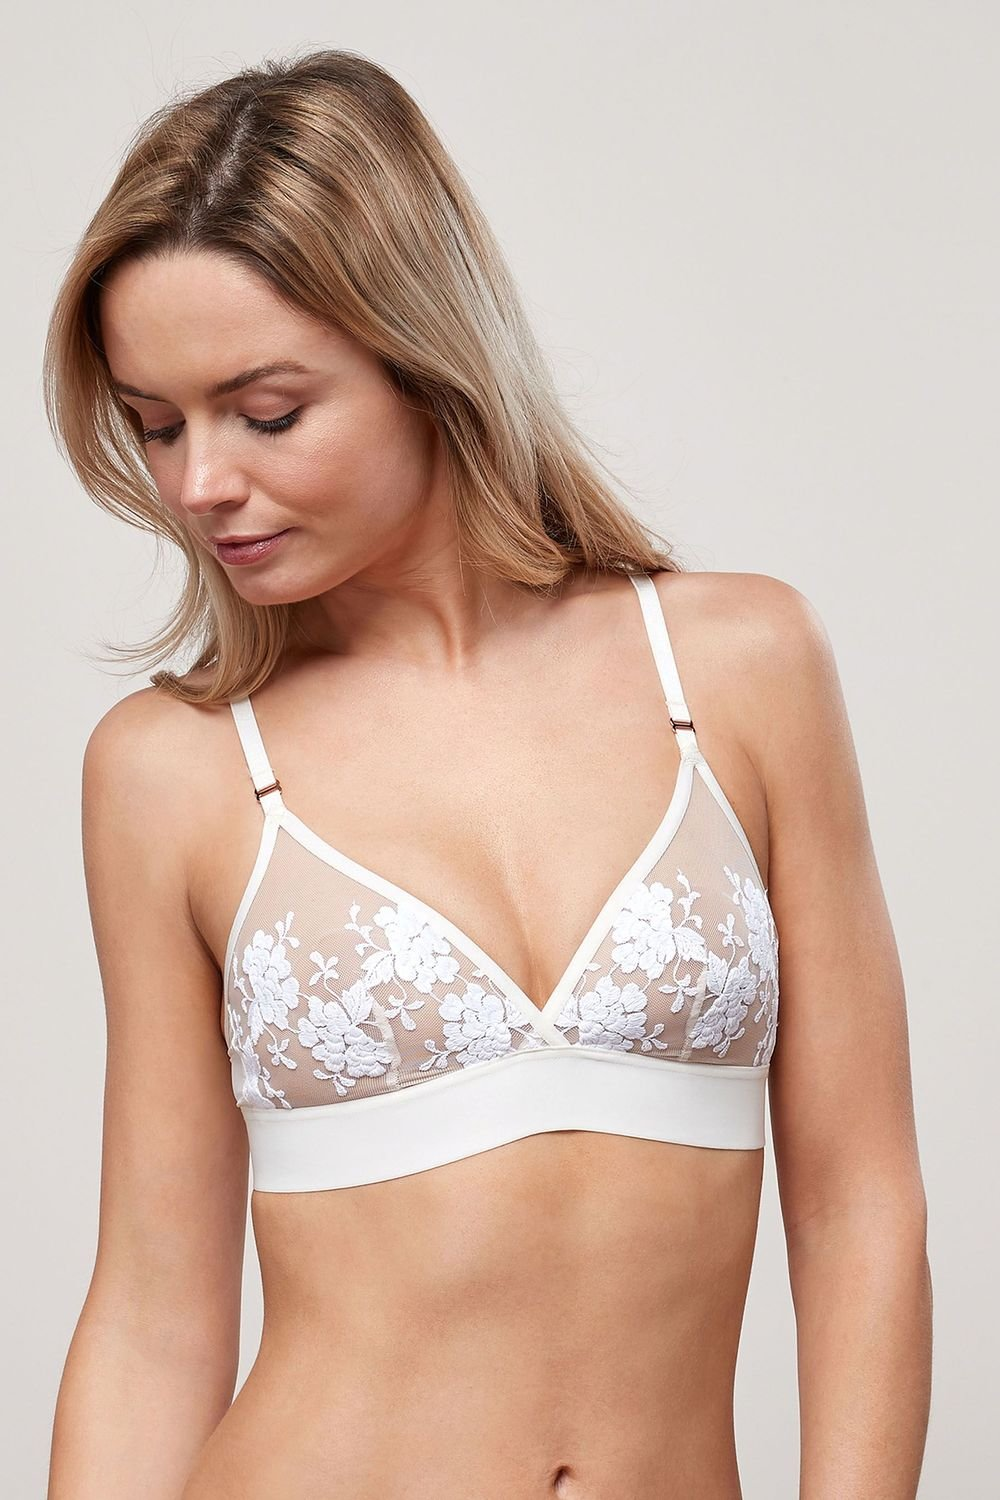 69965d5190322 Next Embroidered Non-Pad Non-Wired Bralette Online